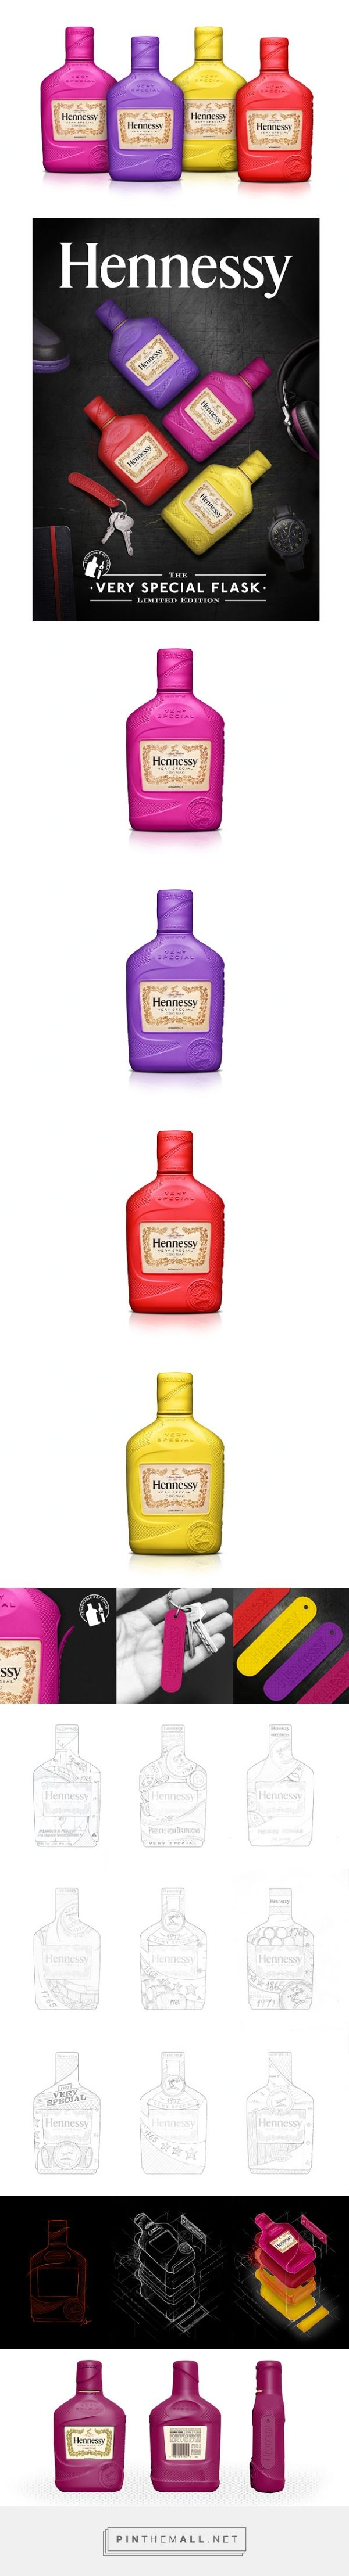 Hennessy V.S. Flask Sleeve #limitededition #packaging #silicon by Vasava - http://www.packagingoftheworld.com/2015/01/hennessy-vs-flask-sleeve.html